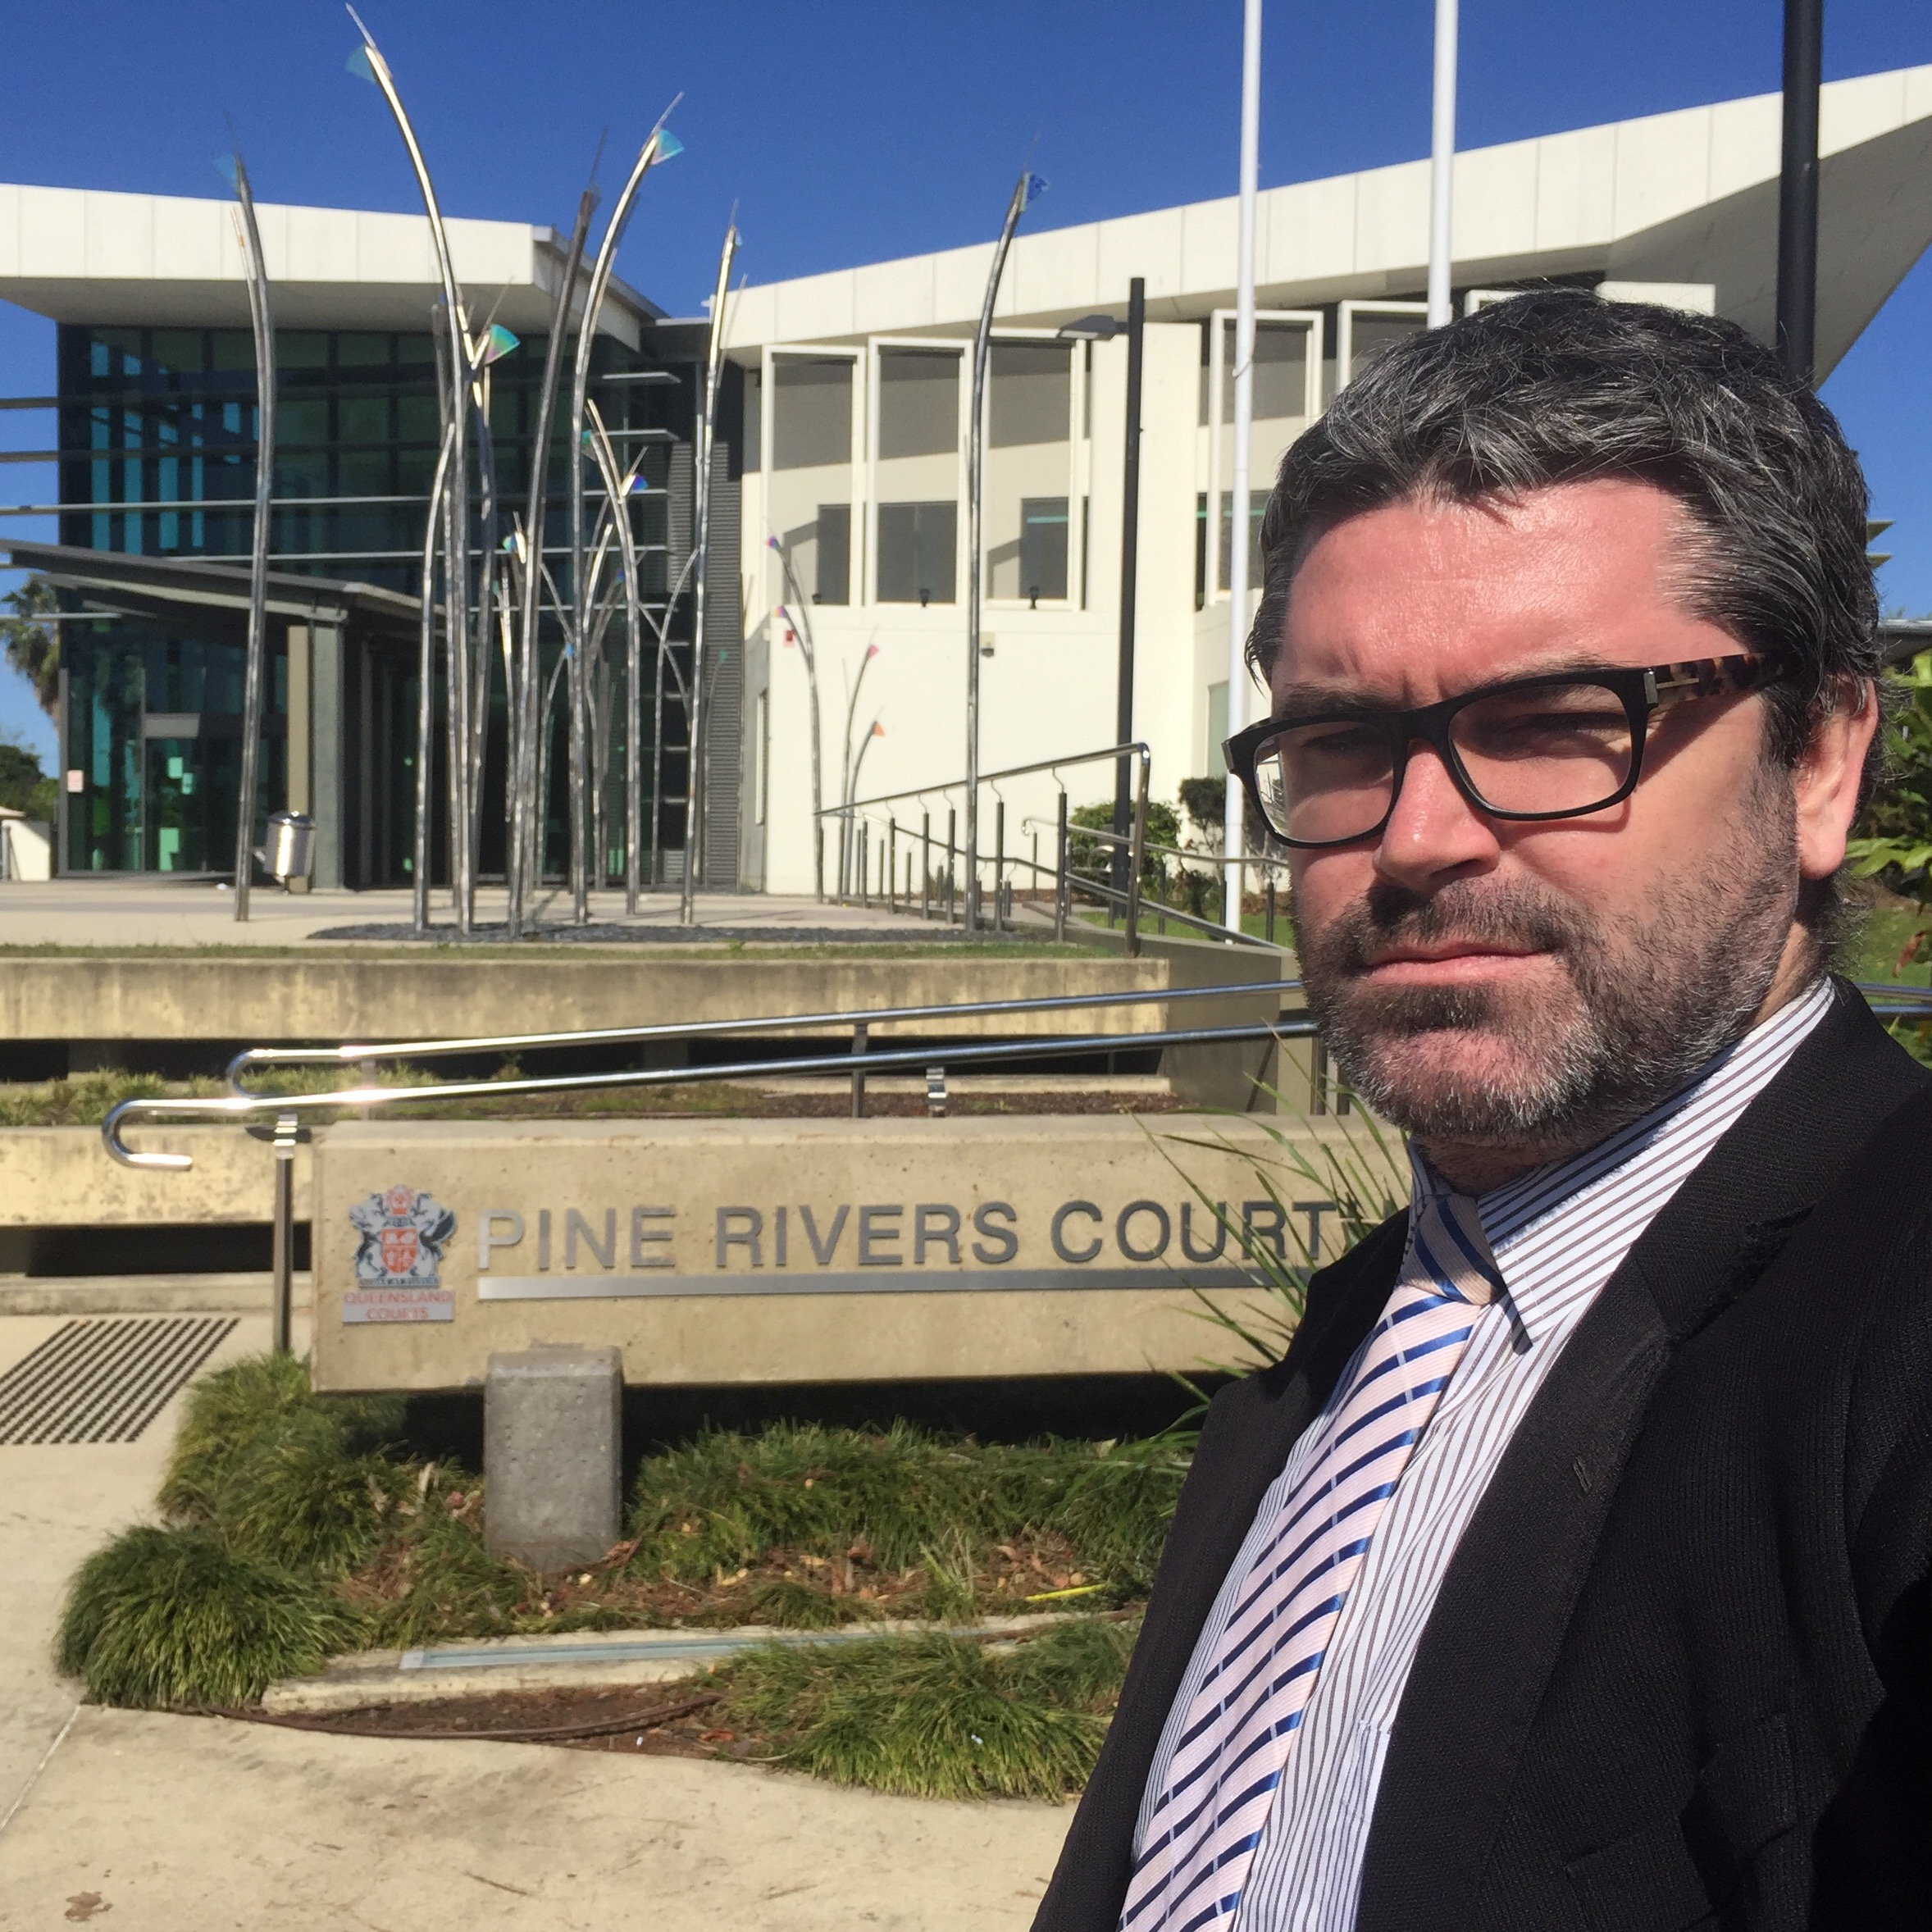 Pine Rivers DUI Drink Driving Drug Driving Lawyer